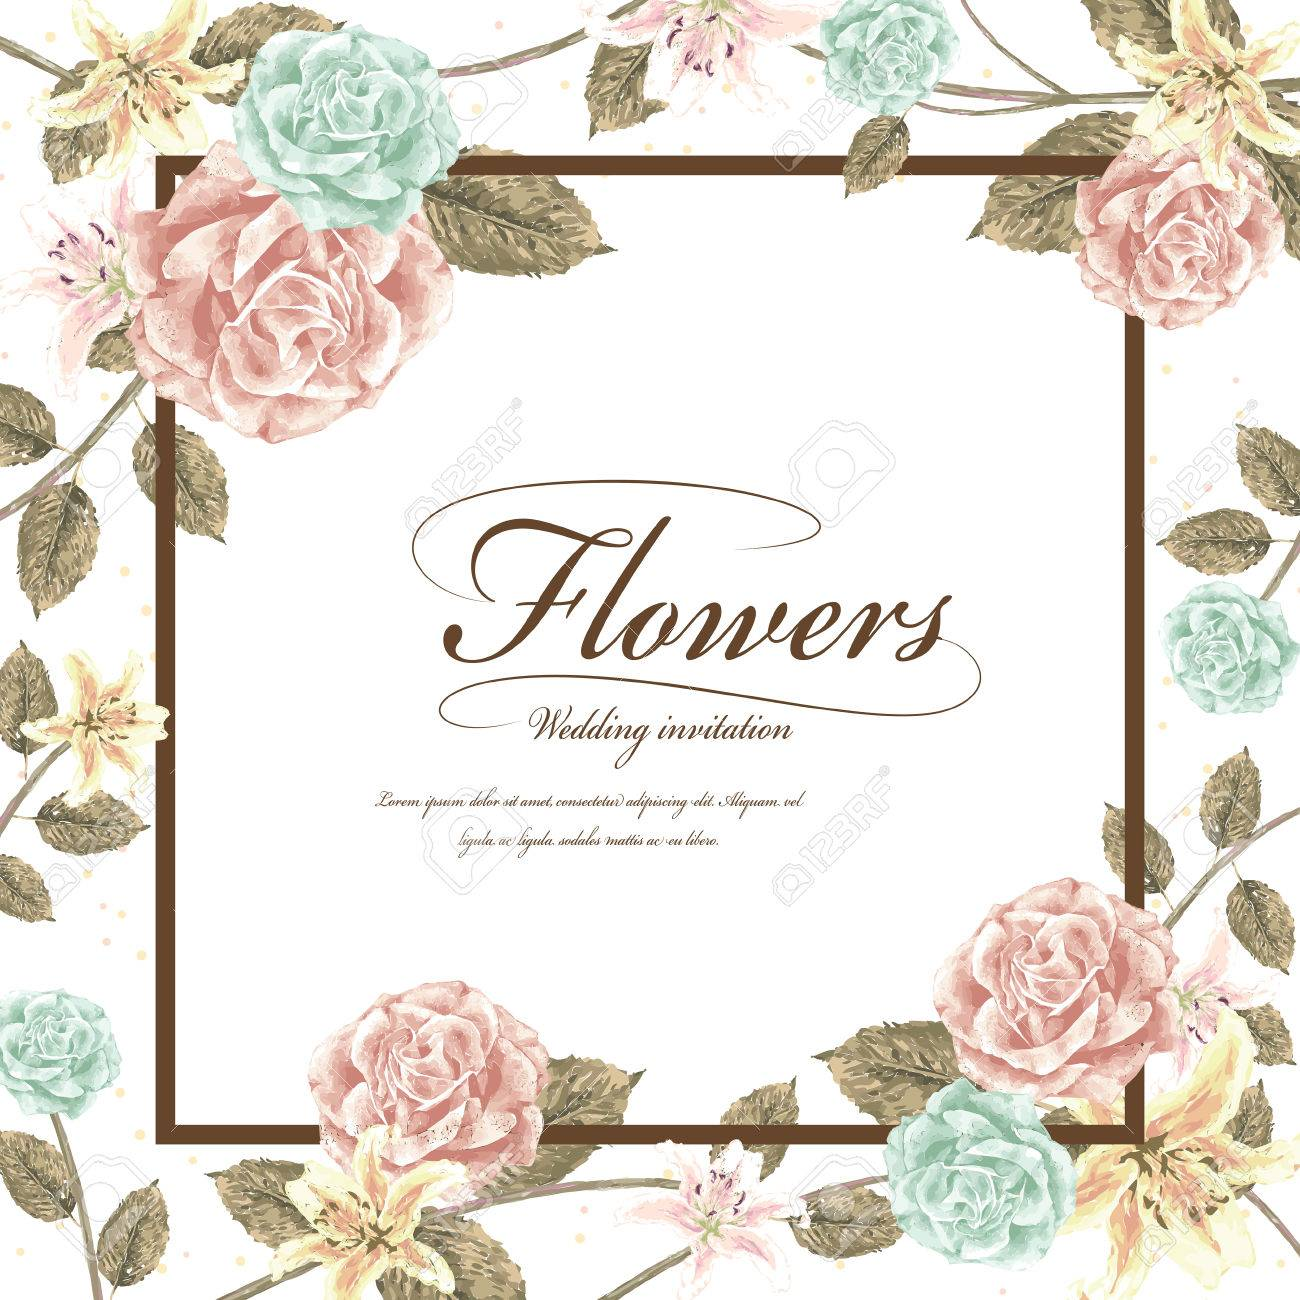 Romantic Flowers Wedding Invitation Template Design With Roses ...